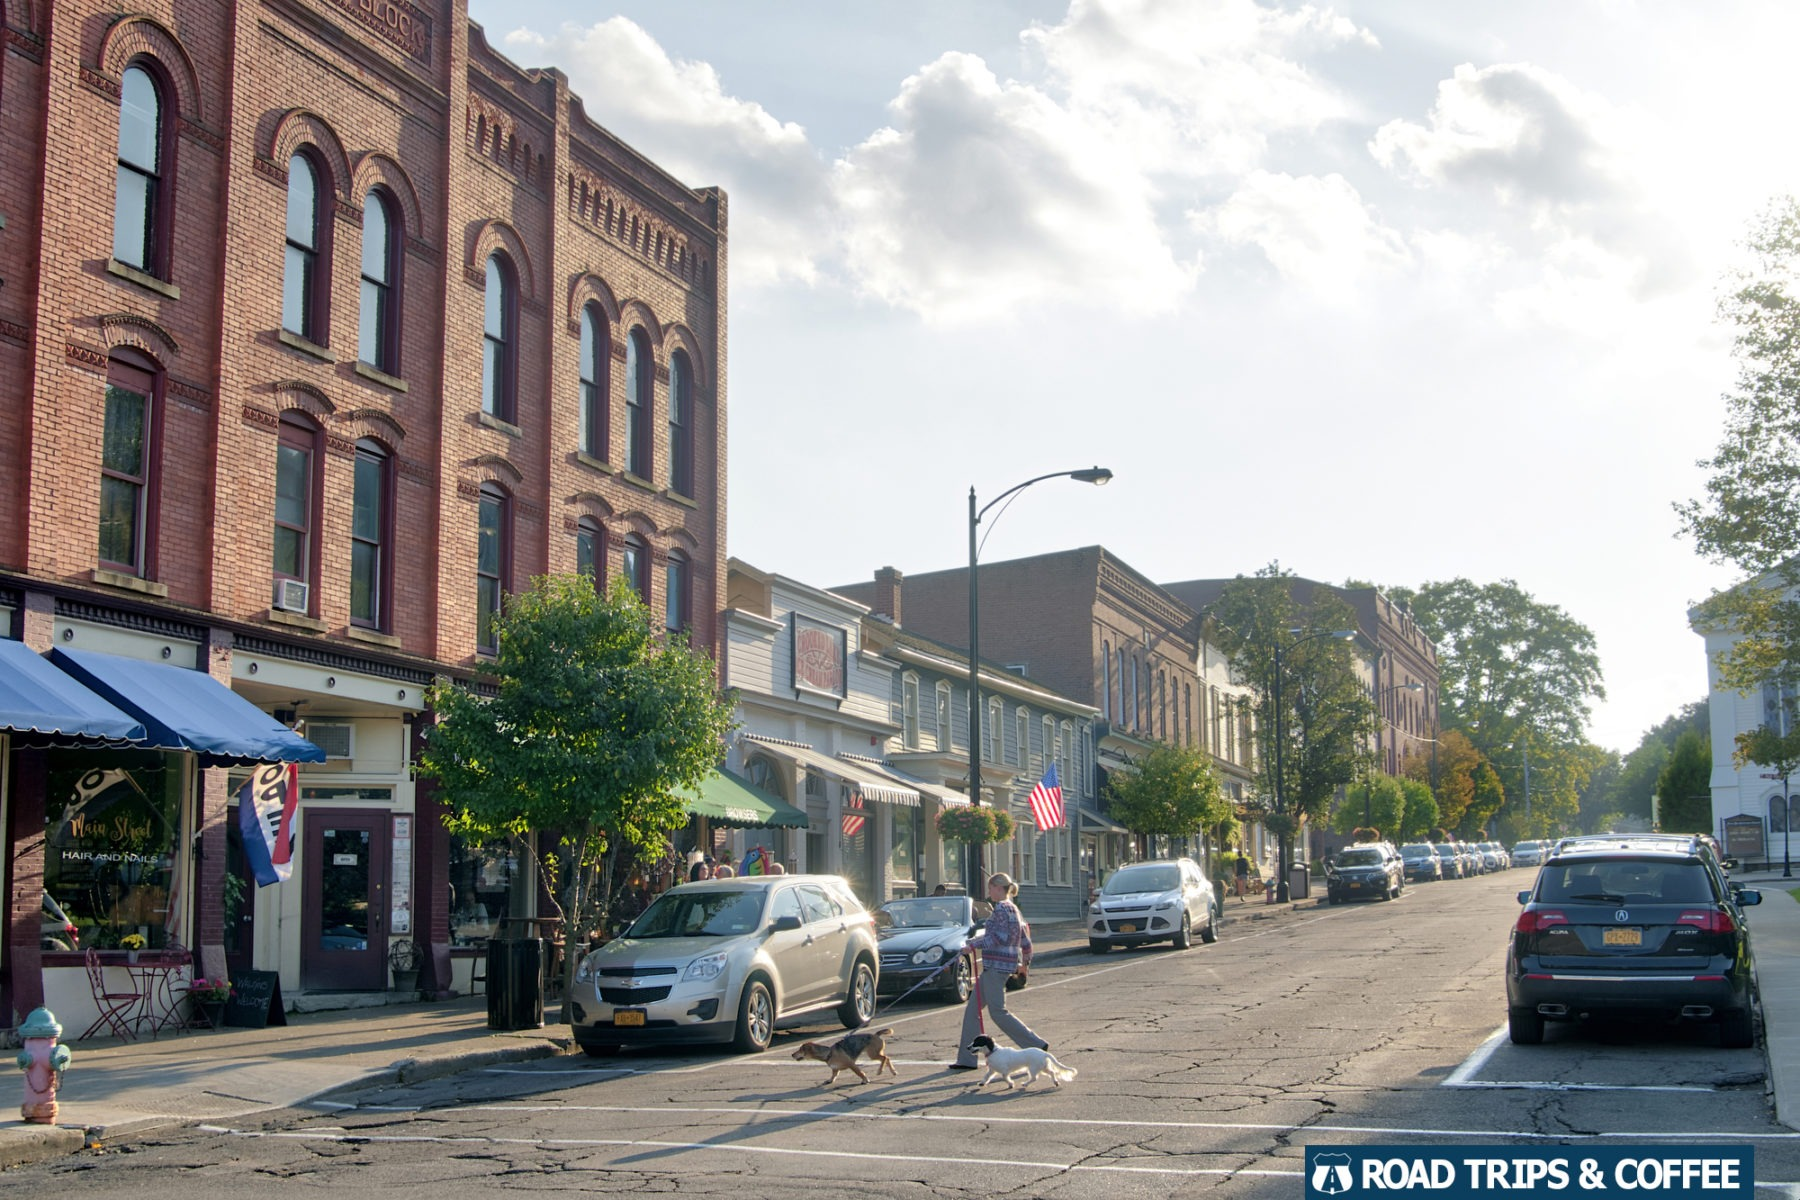 A woman walks her two dogs across the quaint streets of downtown Hammondsport, New York